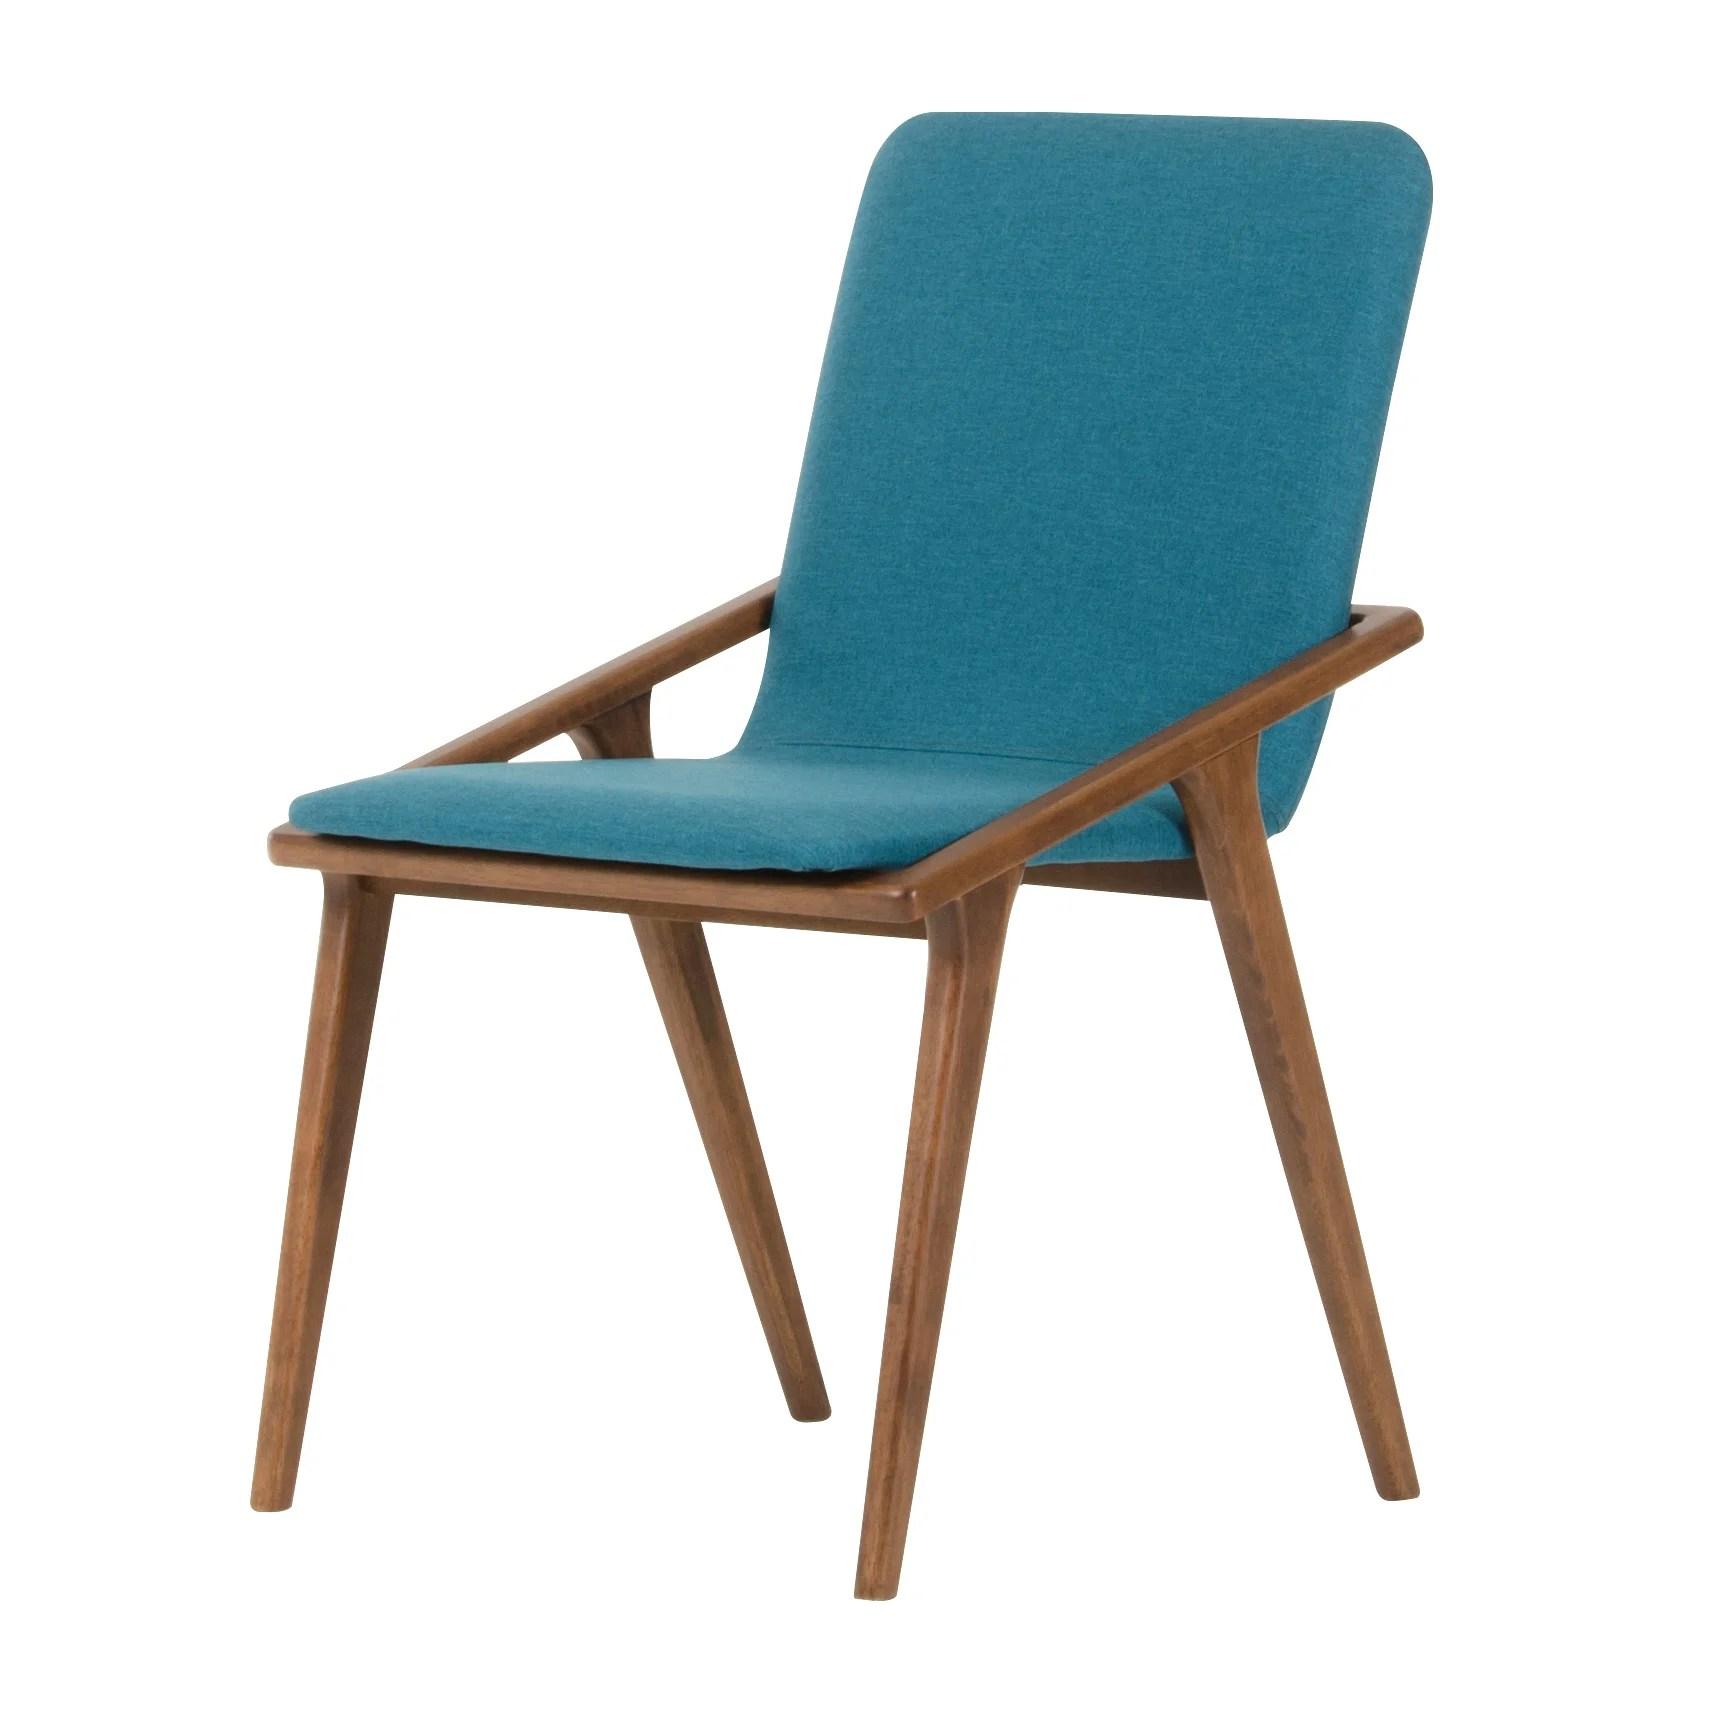 teal dining chairs teal kitchen chairs Kitchen Chair With Arms Toddler Dining Chair With Arms Shaker Teal Dining Chairs